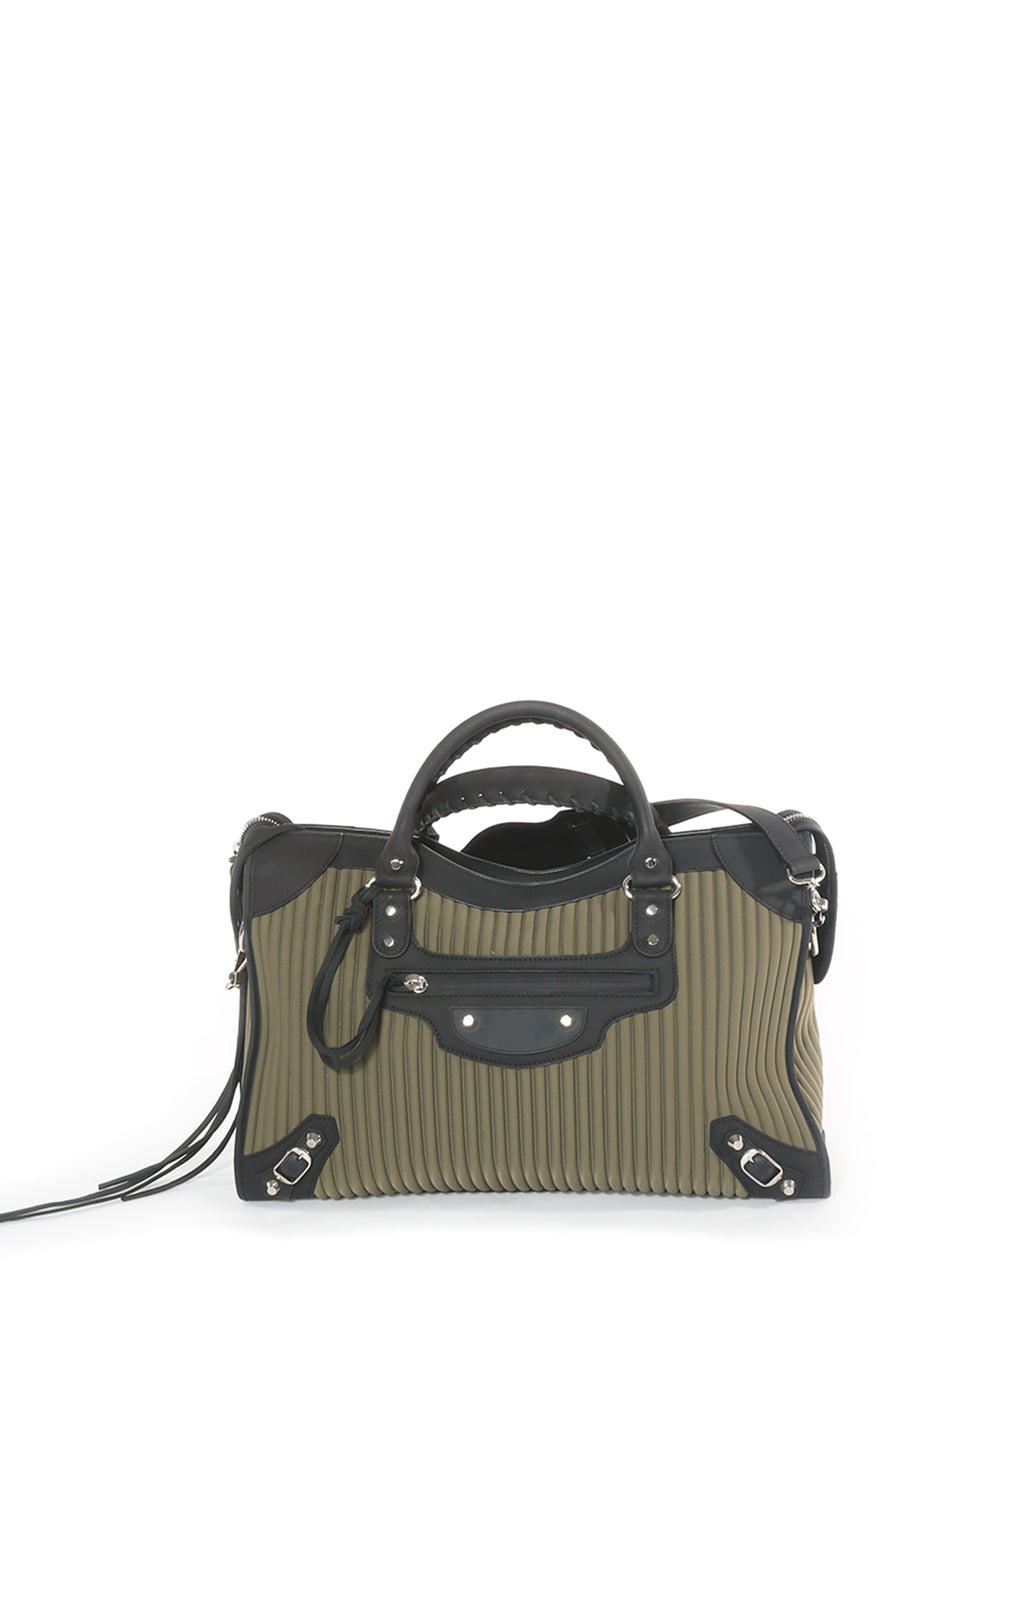 Front view of BALENCIAGA Handbag Size: 15in x 10 in x 5.5in